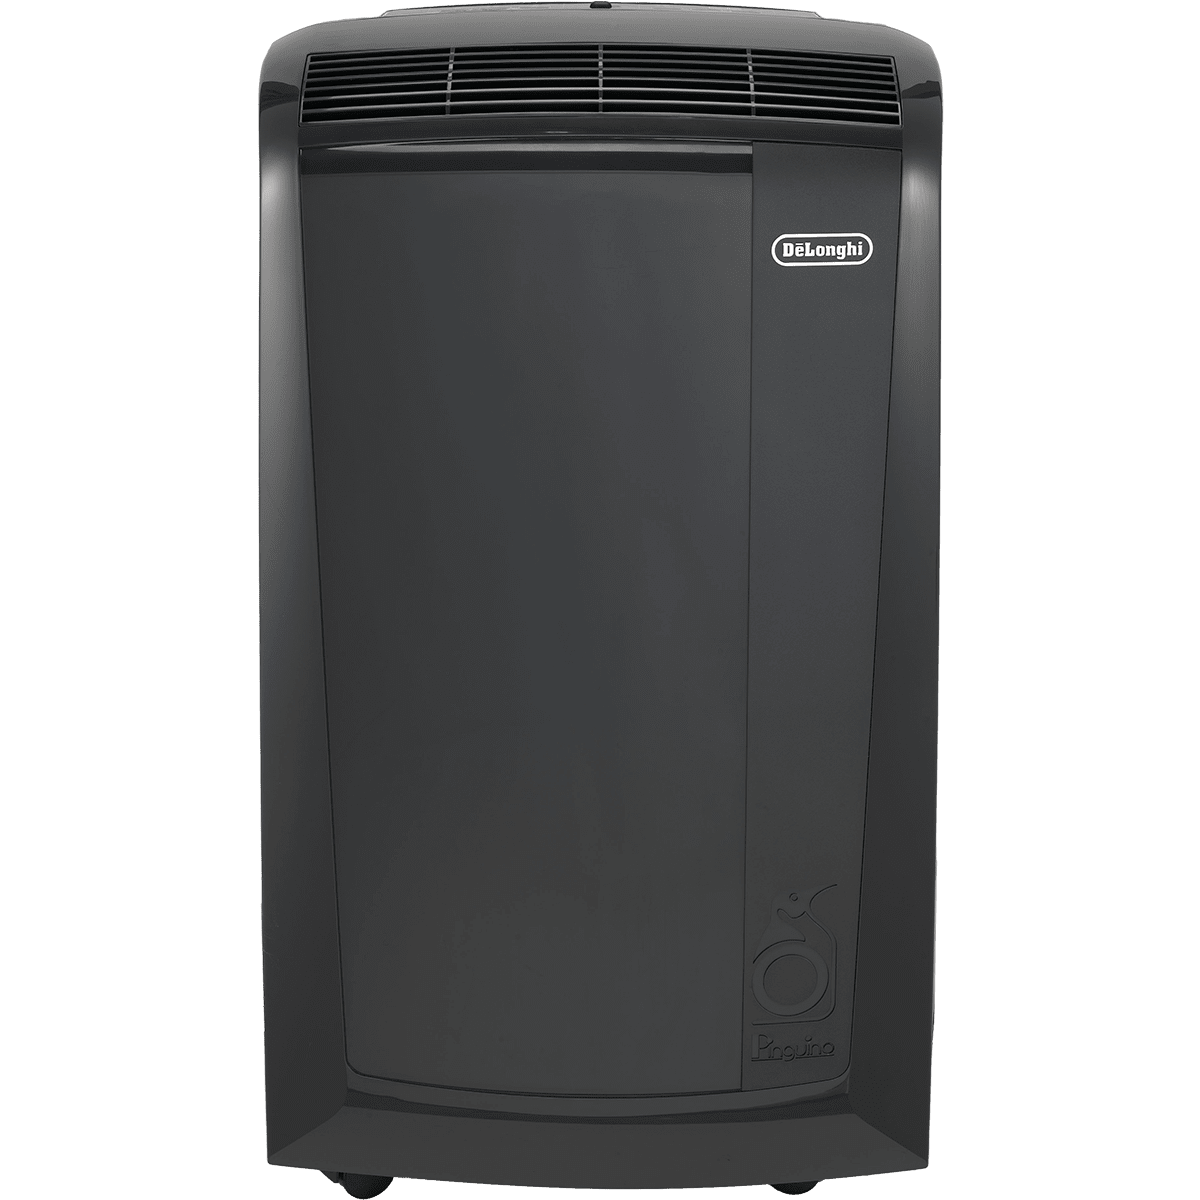 Delonghi portable air conditioner and heater - Delonghi N130hpe Portable Air Conditioner